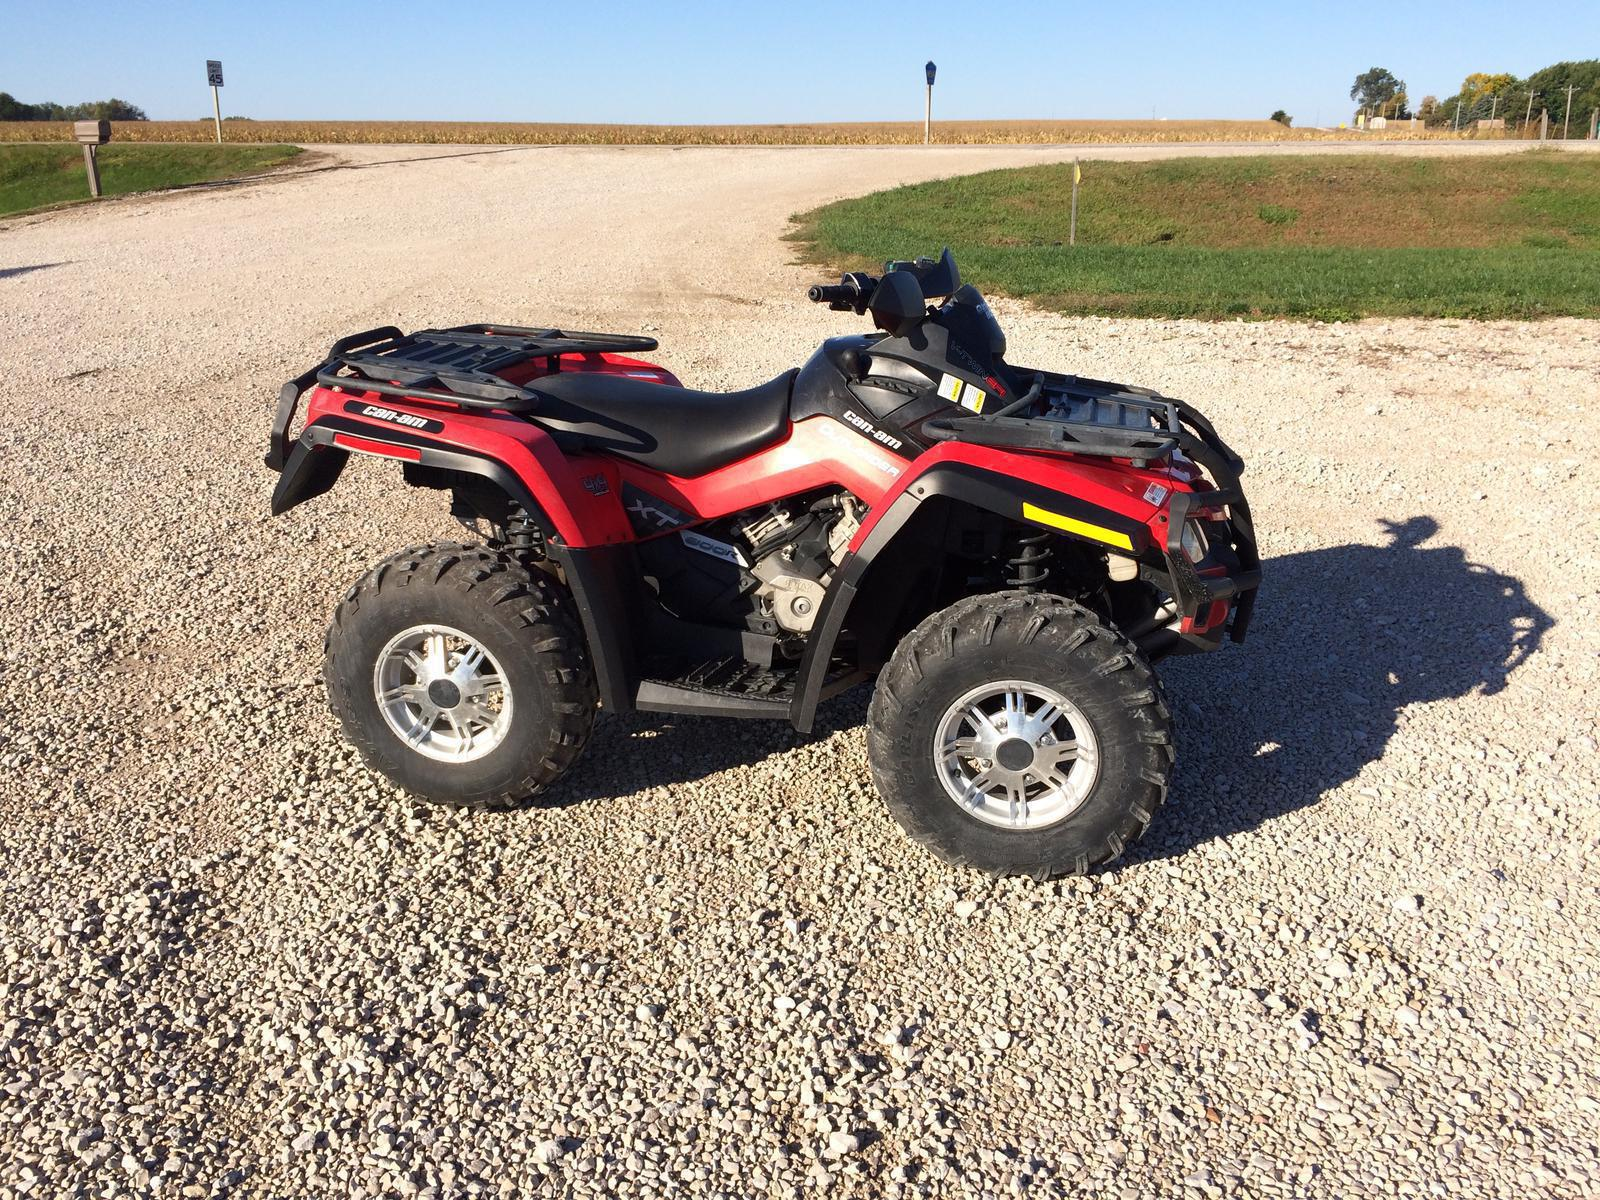 2010 Can Am Outlander 800R EFI XT for sale in Lake View IA